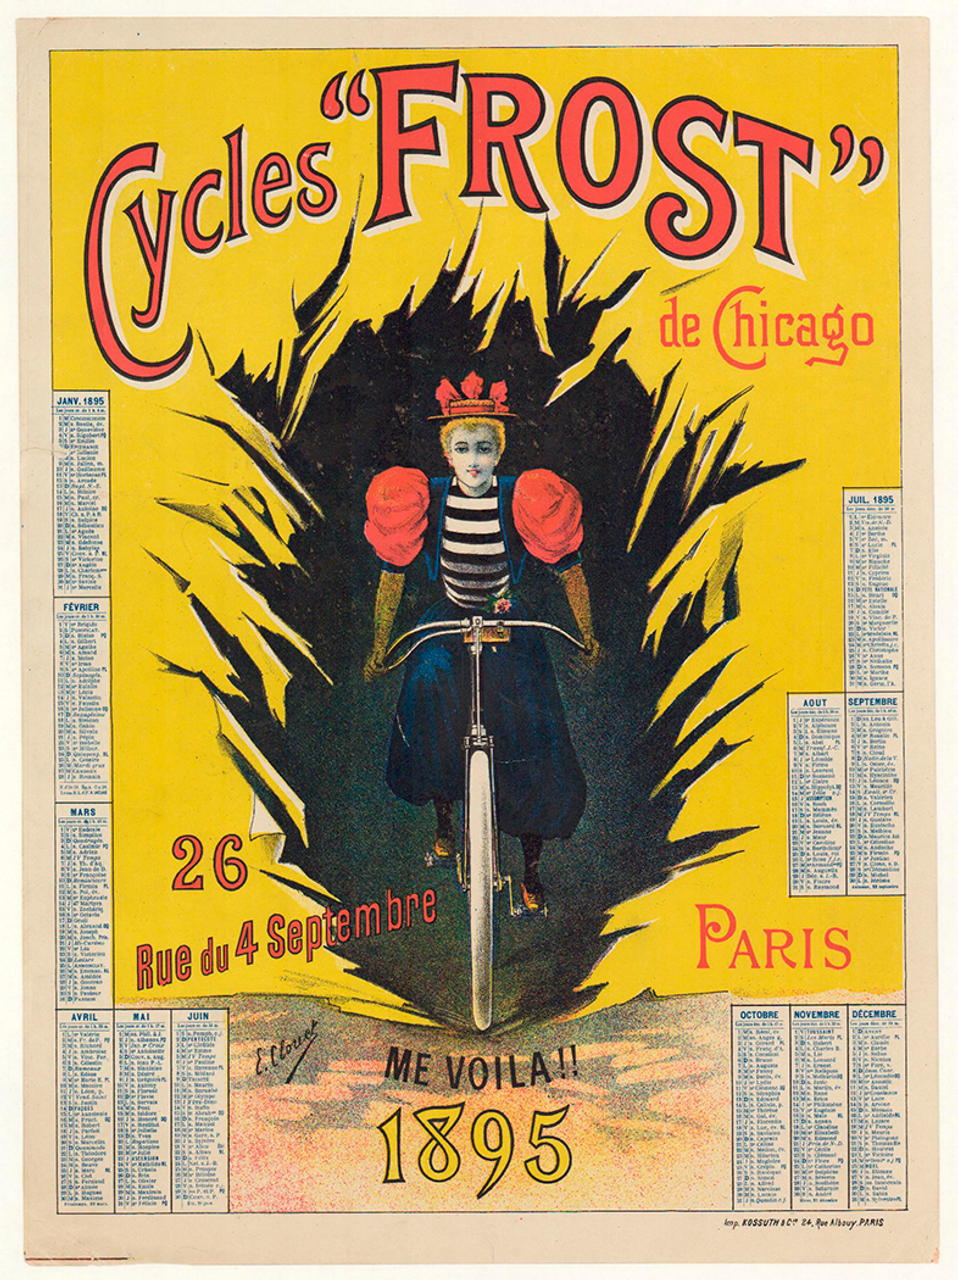 Cycles Frost de Chicago Original Vintage Bicycle Poster by Clouet